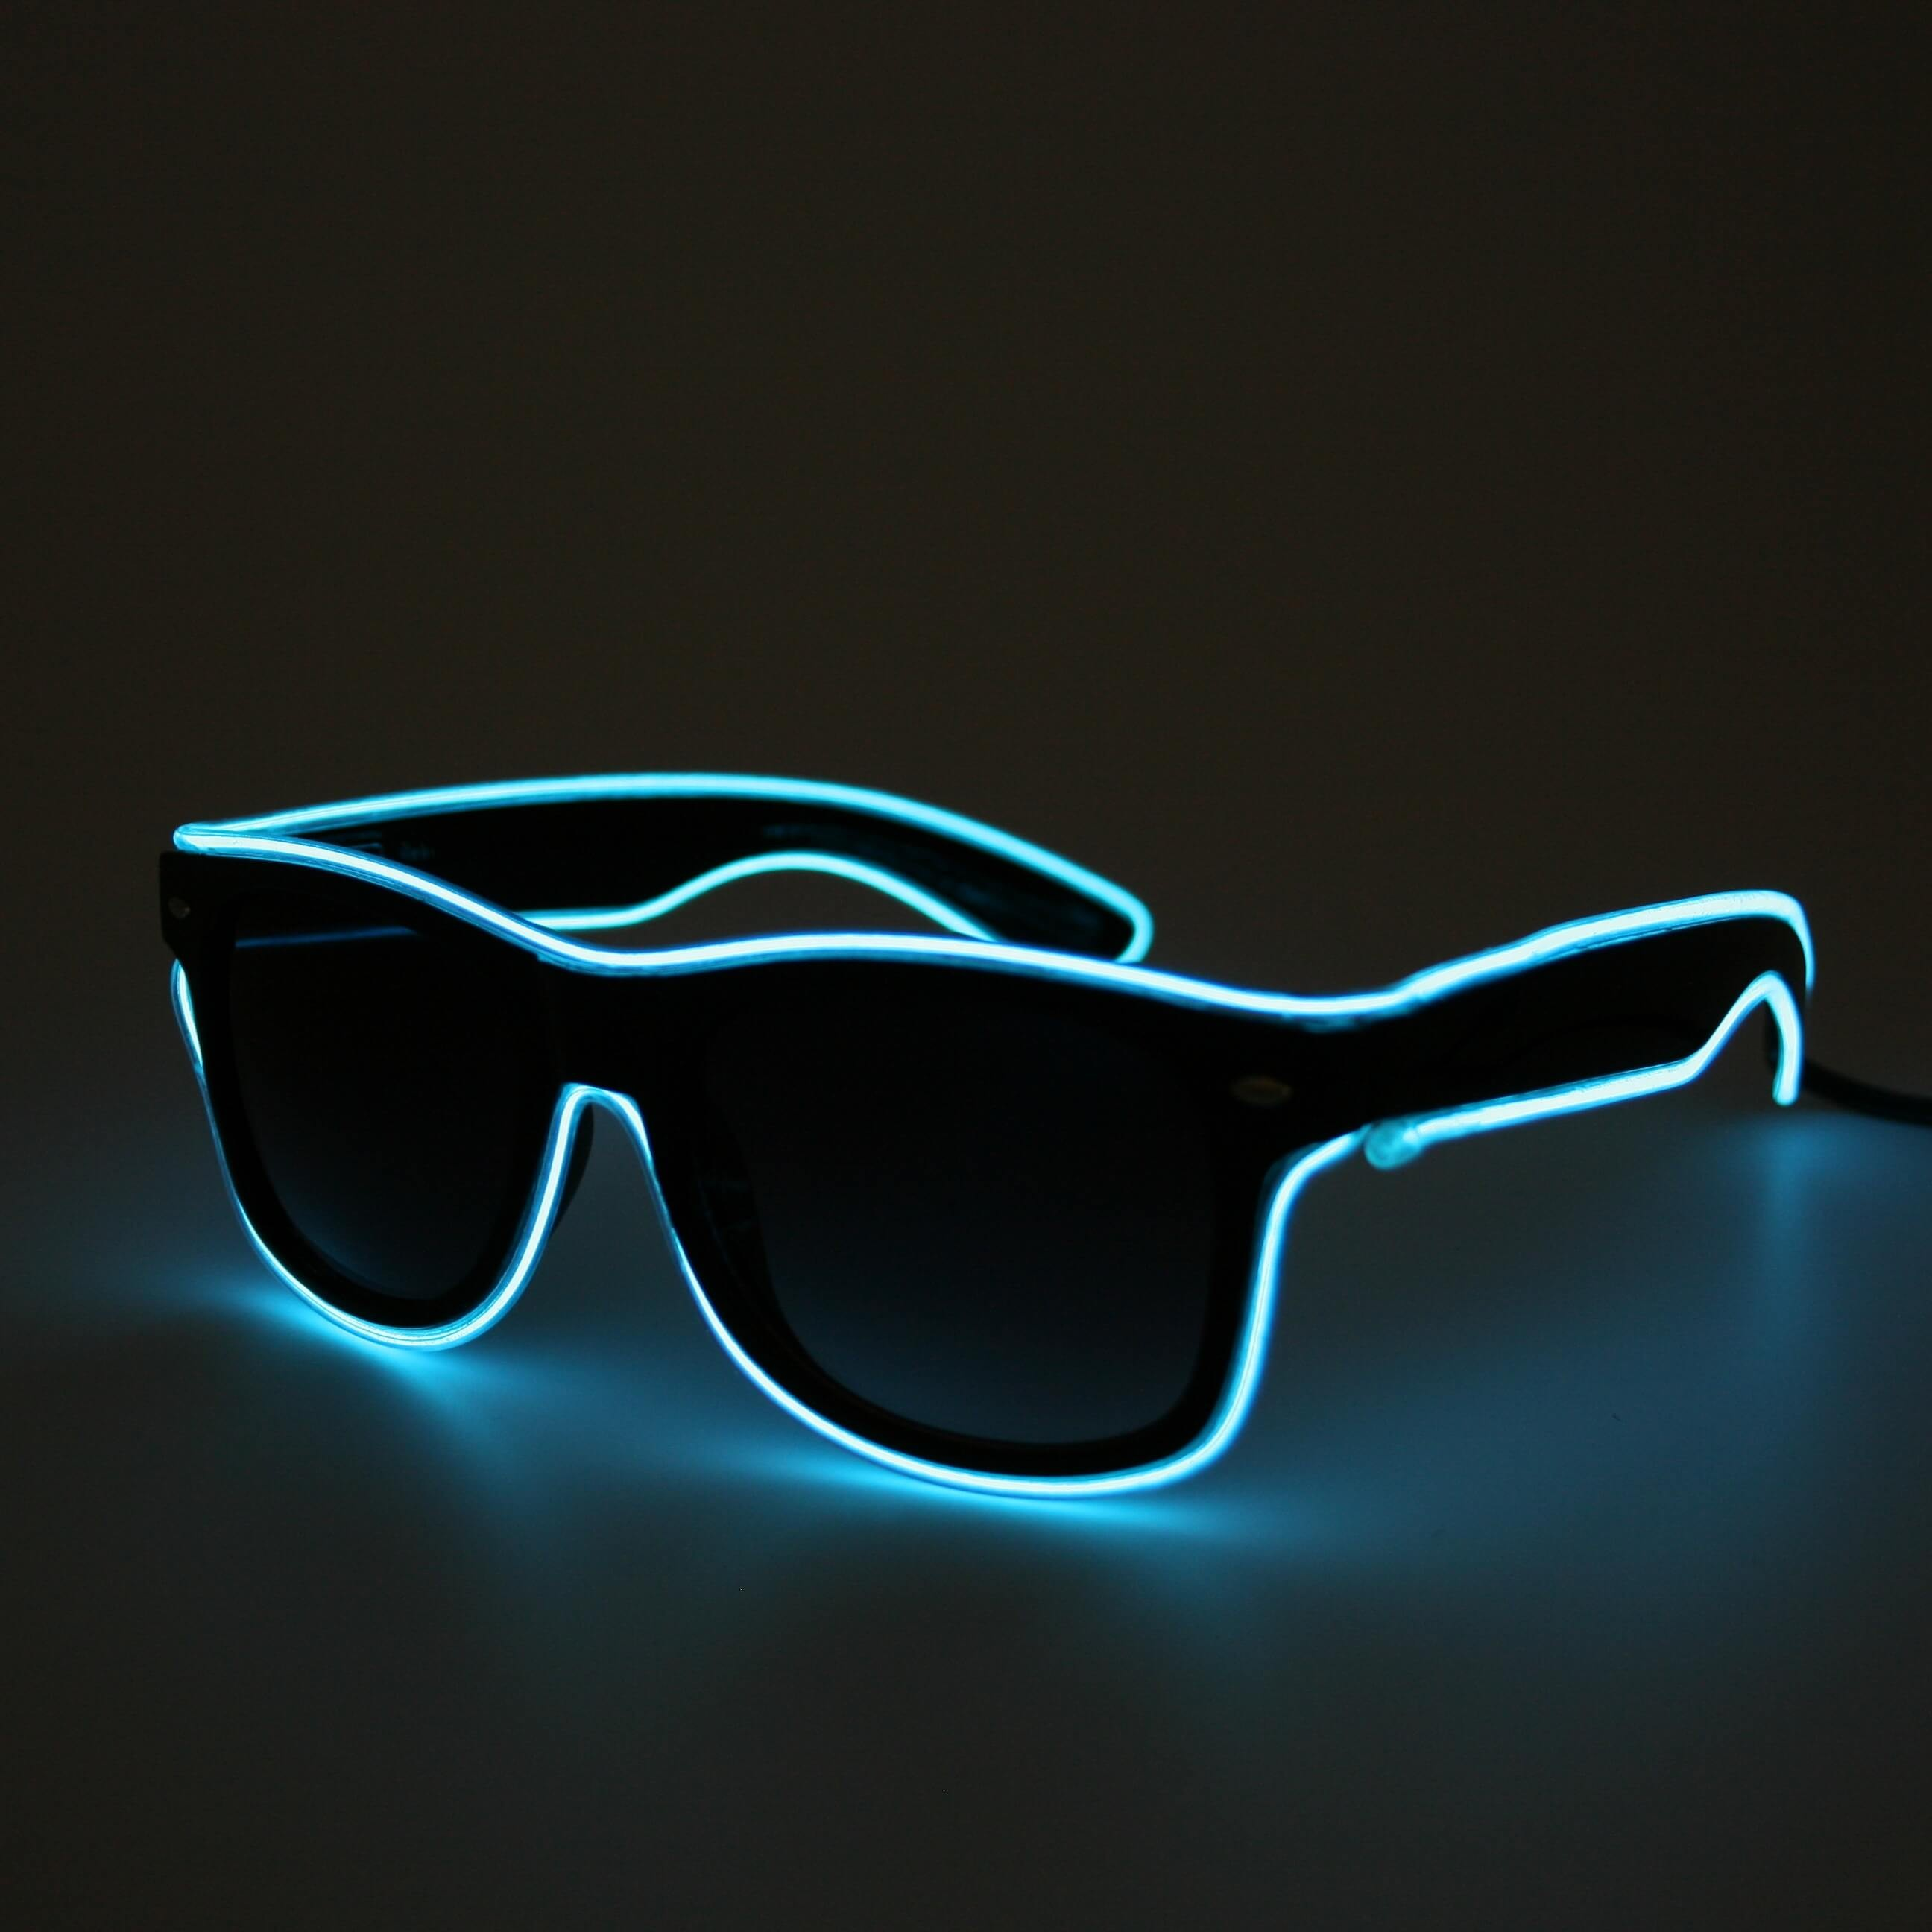 LED Neon Glasses Light Blue